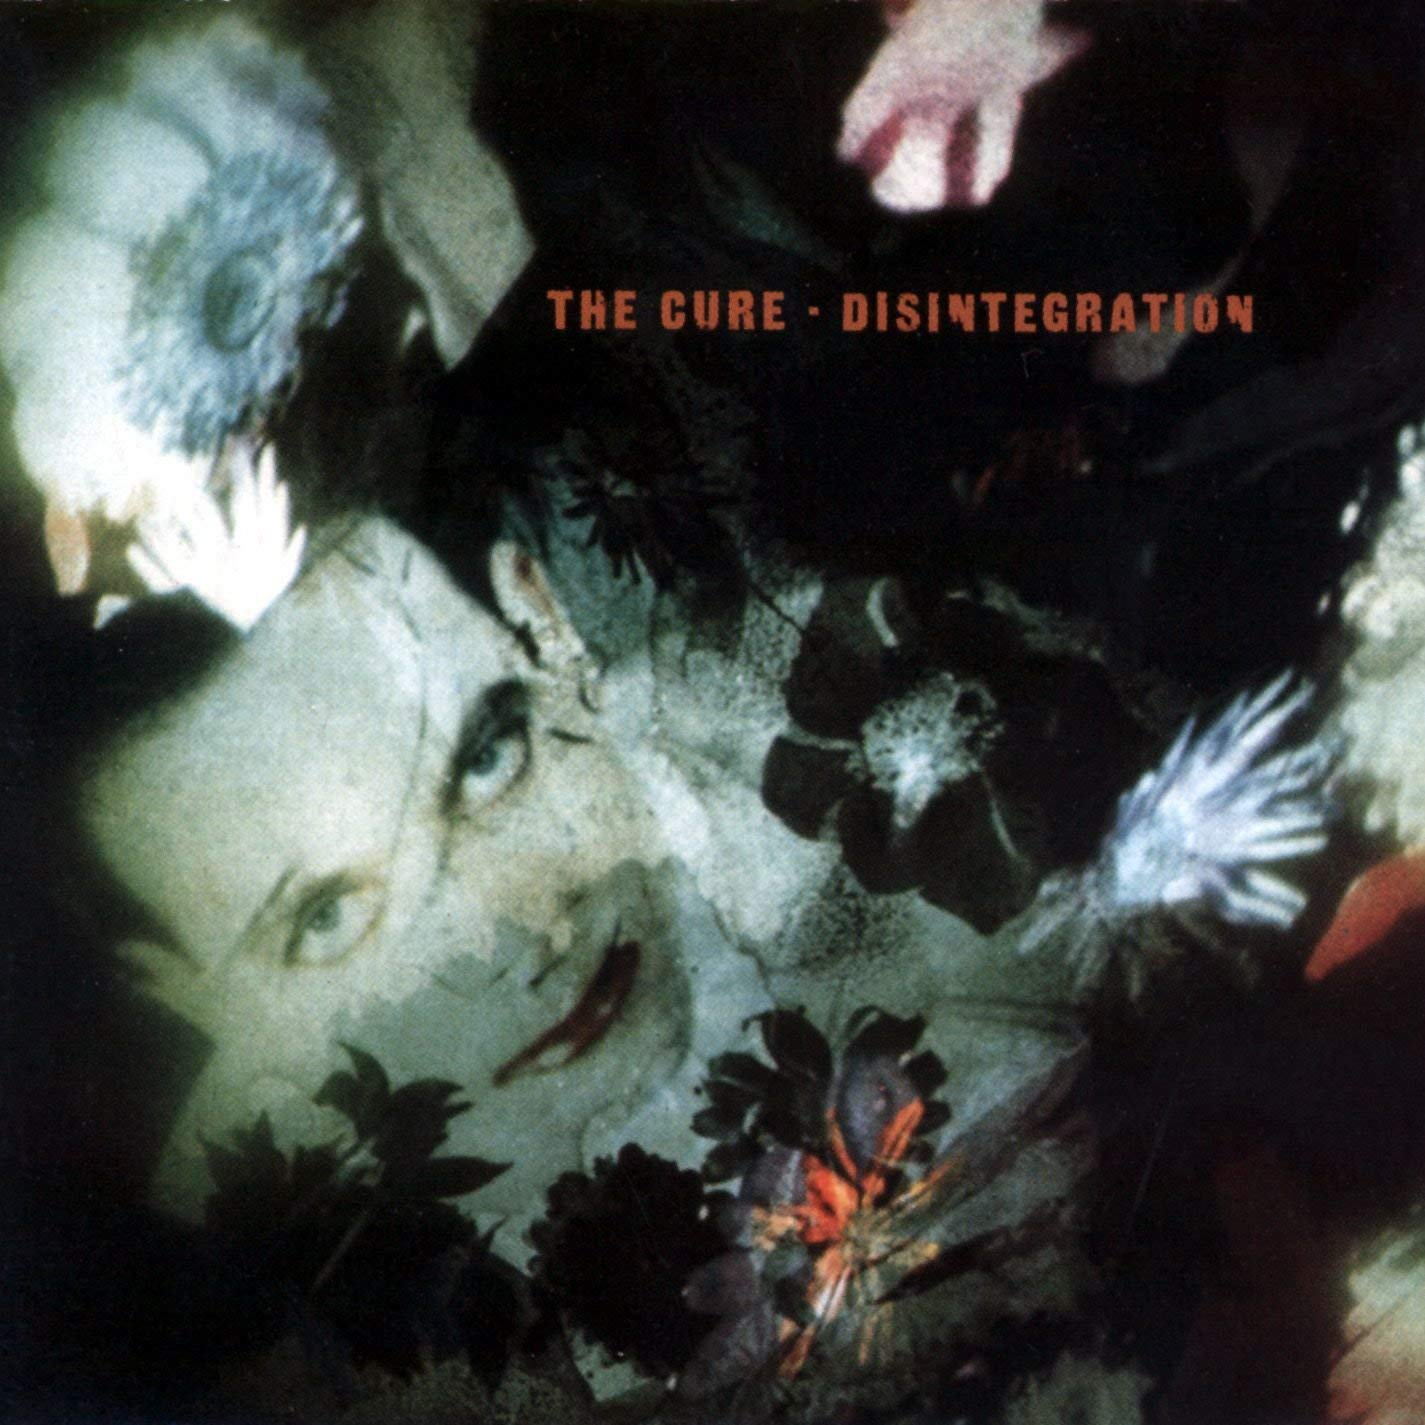 The Making of the Cures Disintegration